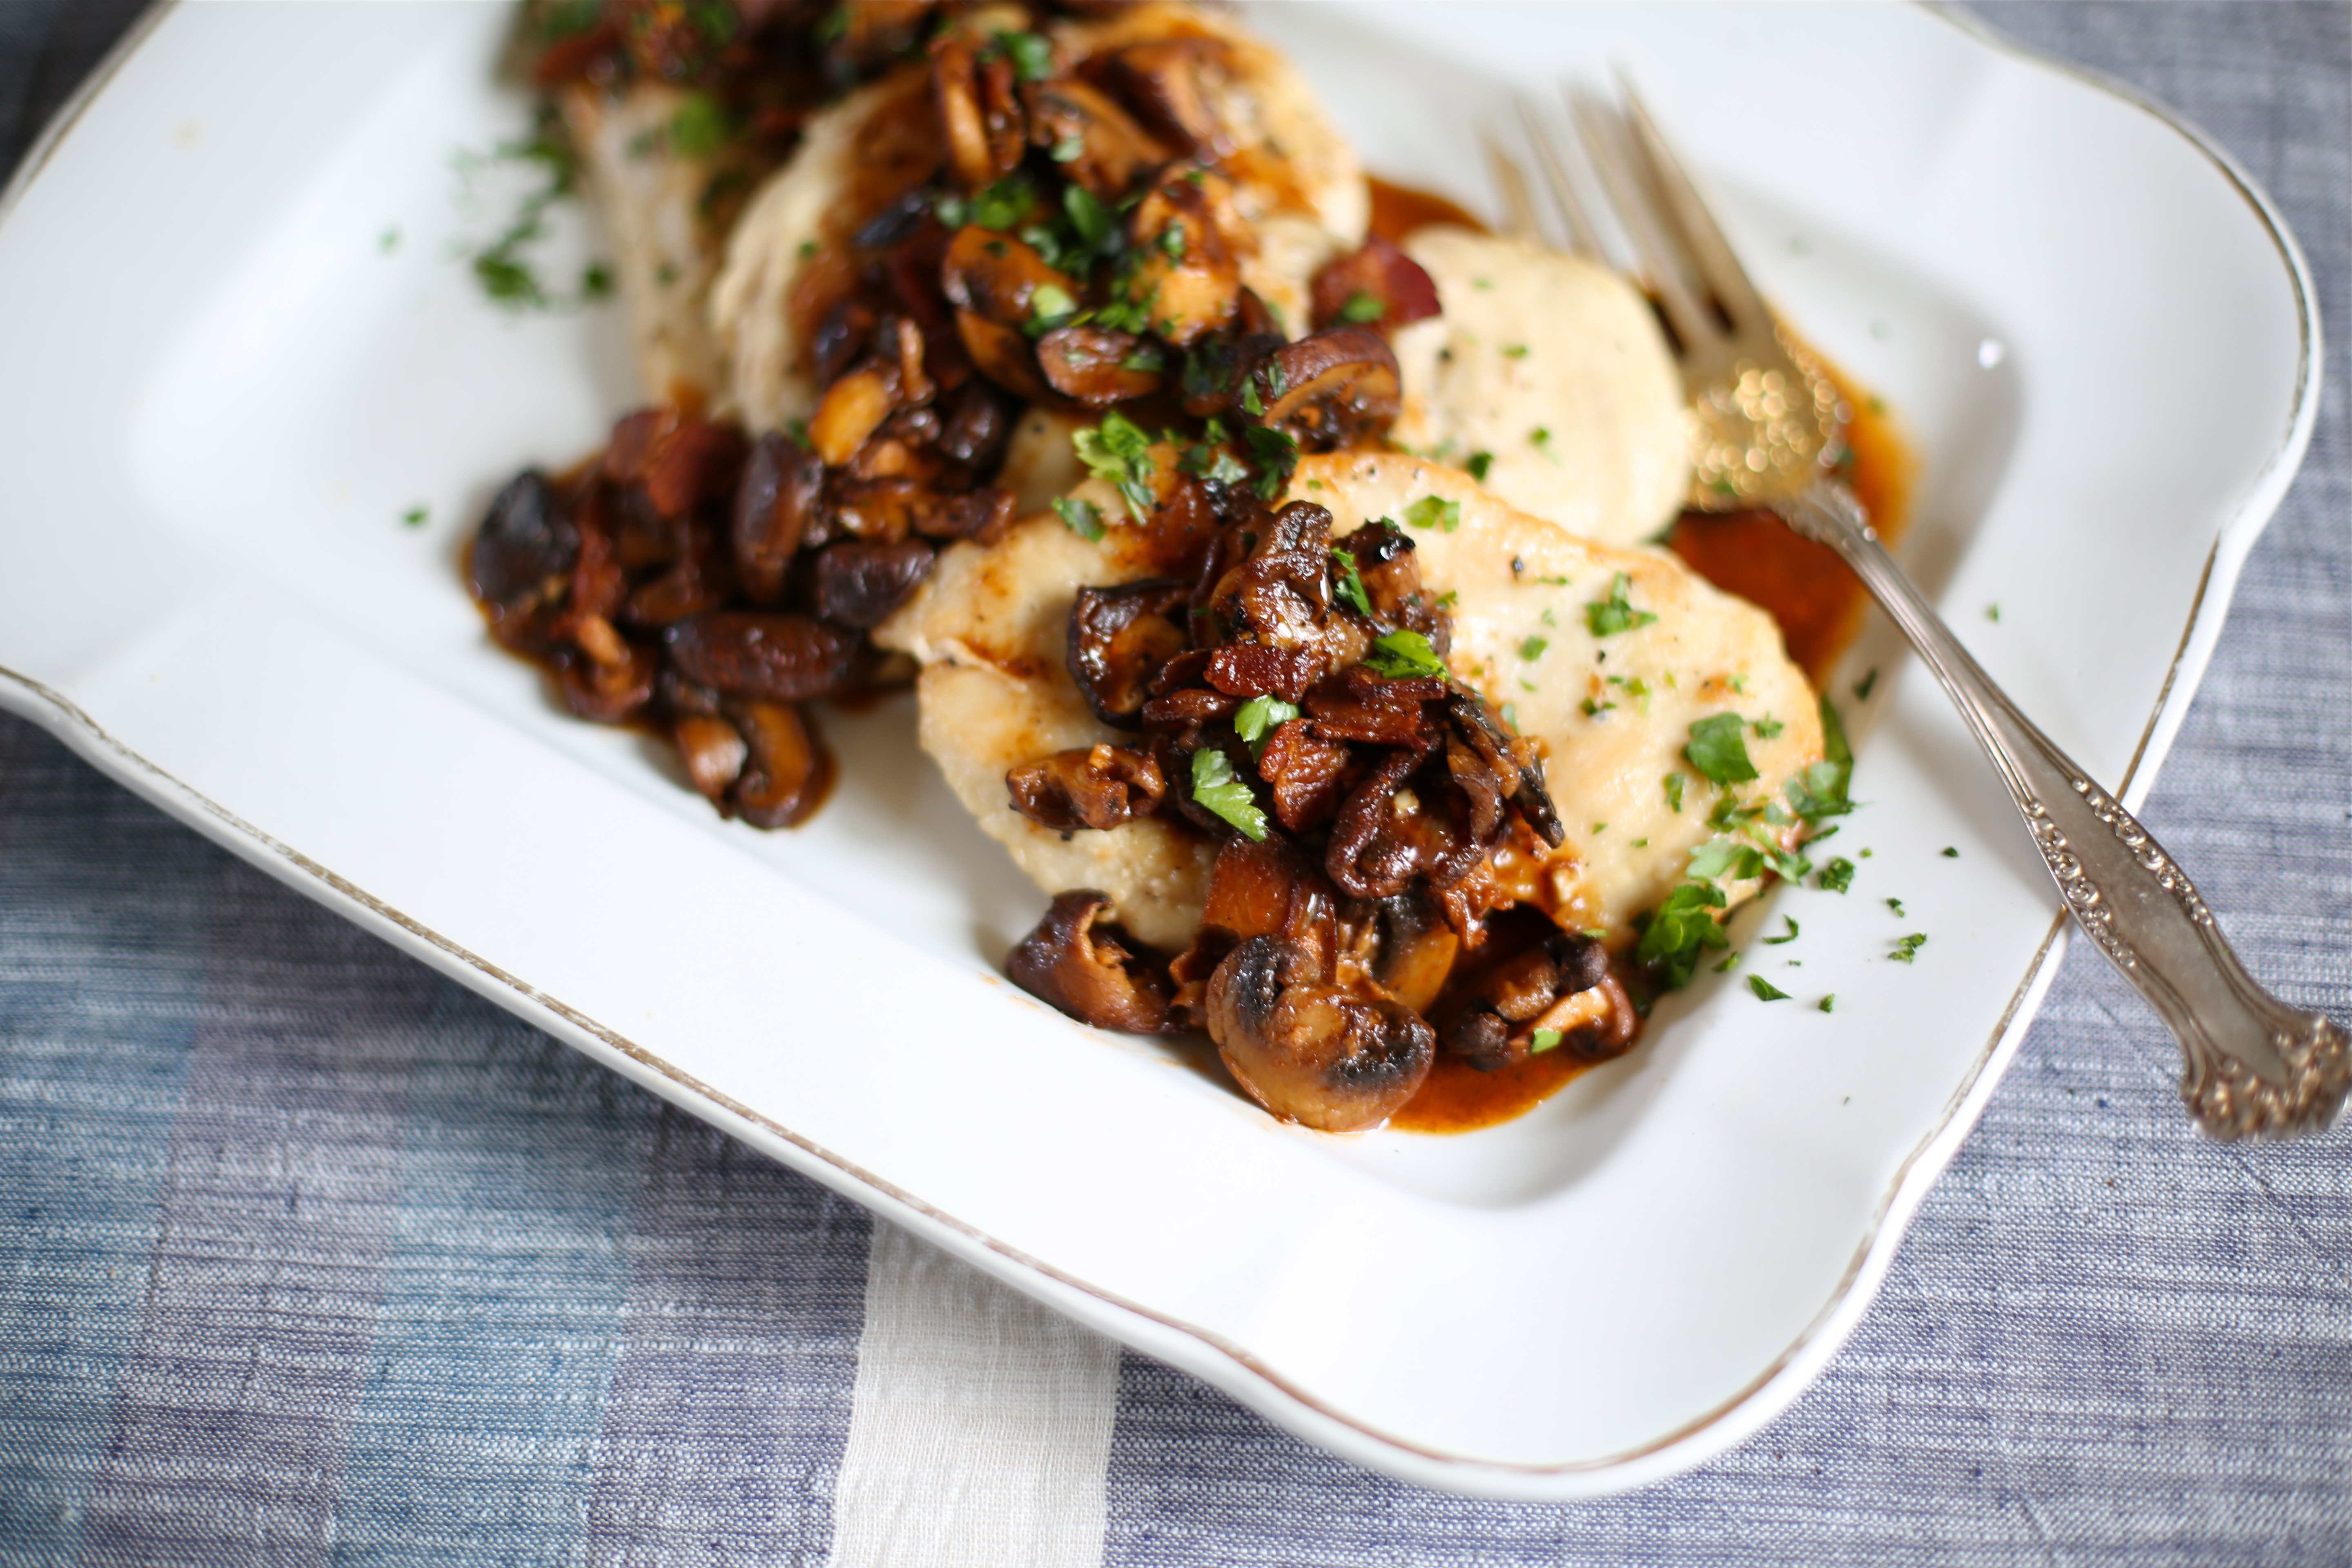 Several pieces of Chicken Marsala on a serving platter with a silver serving fork